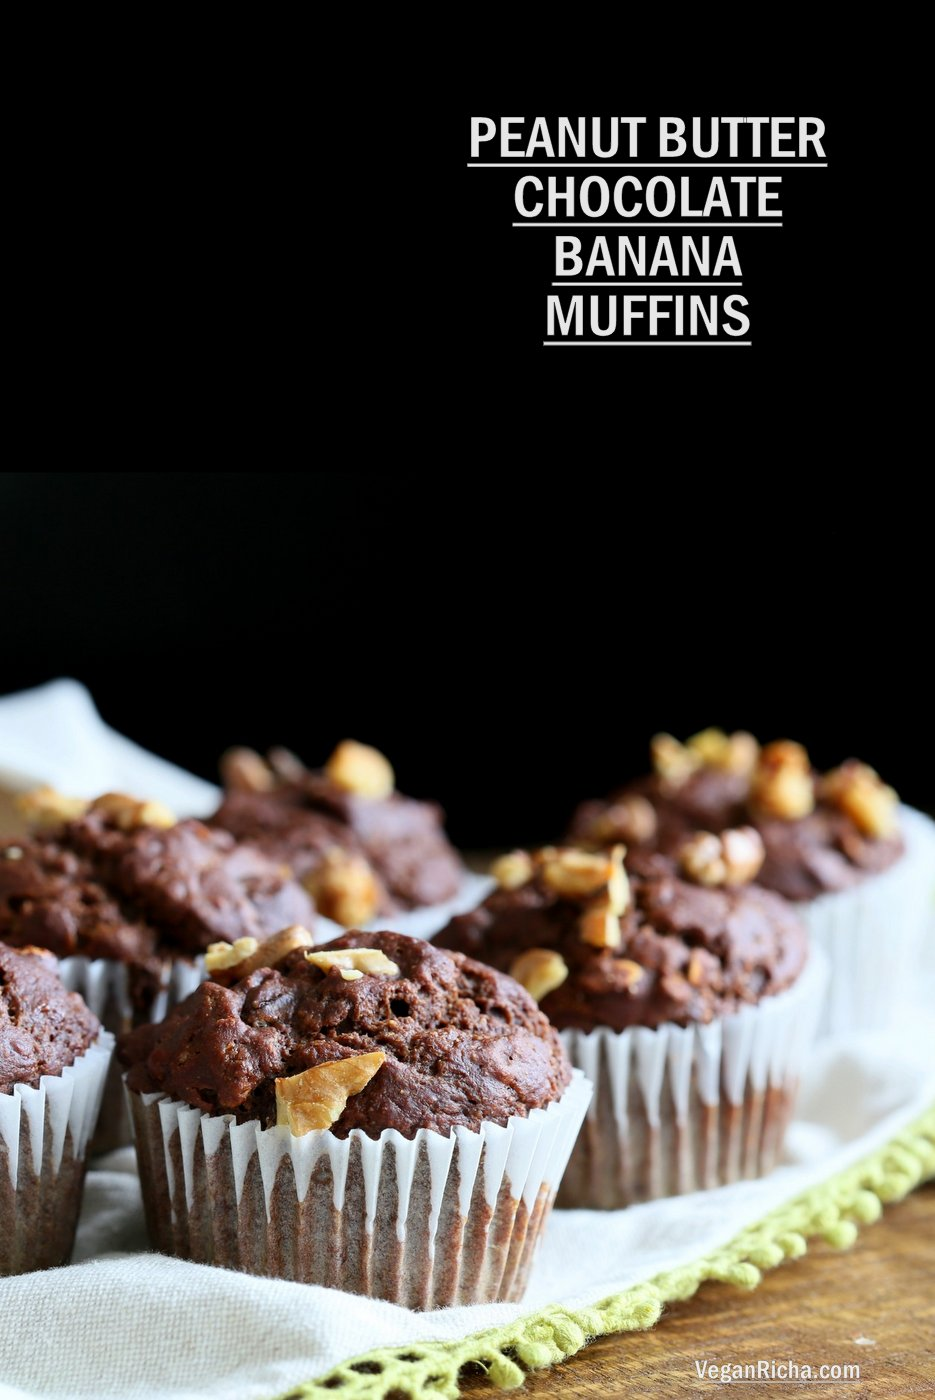 Peanut Butter Chocolate Banana Muffins 1 Bowl / Blender. No Added oil in these tall muffins. Easy 1 Bowl Chocolate Banana Muffins. Vegan Soy-free Recipe. Gluten-free option | VeganRicha.com